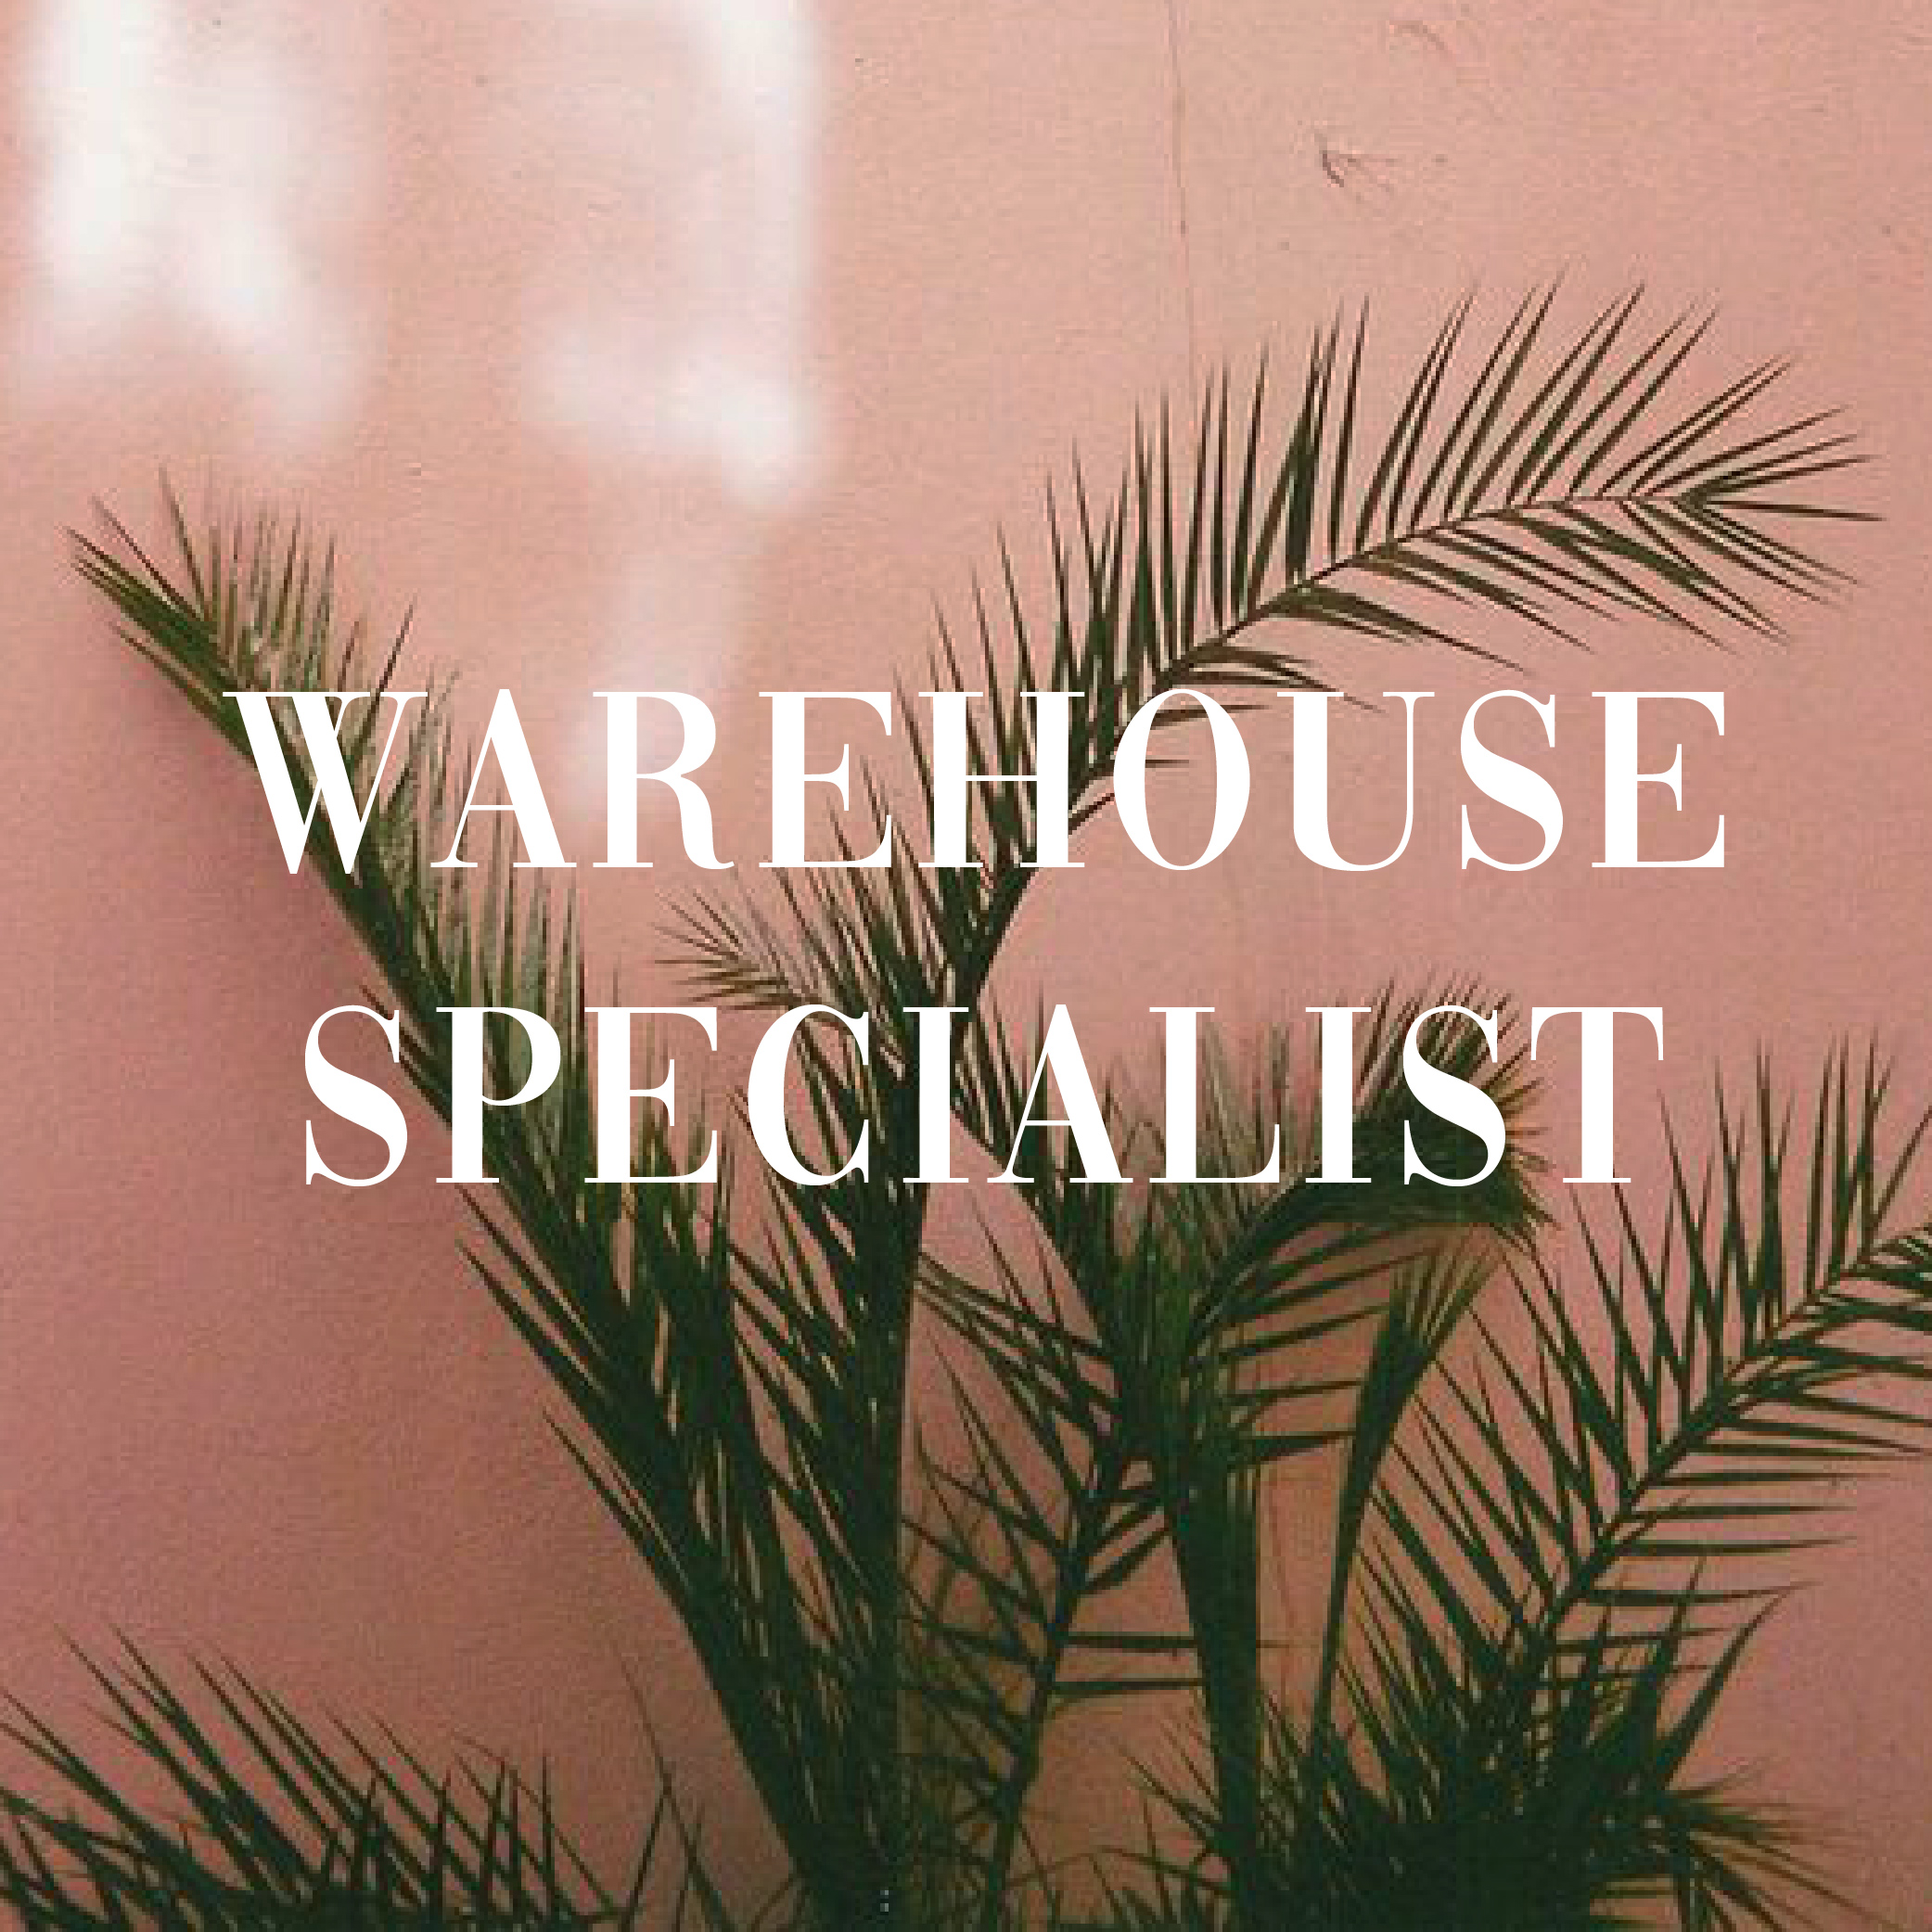 WarehouseSpecialistIcon.jpg